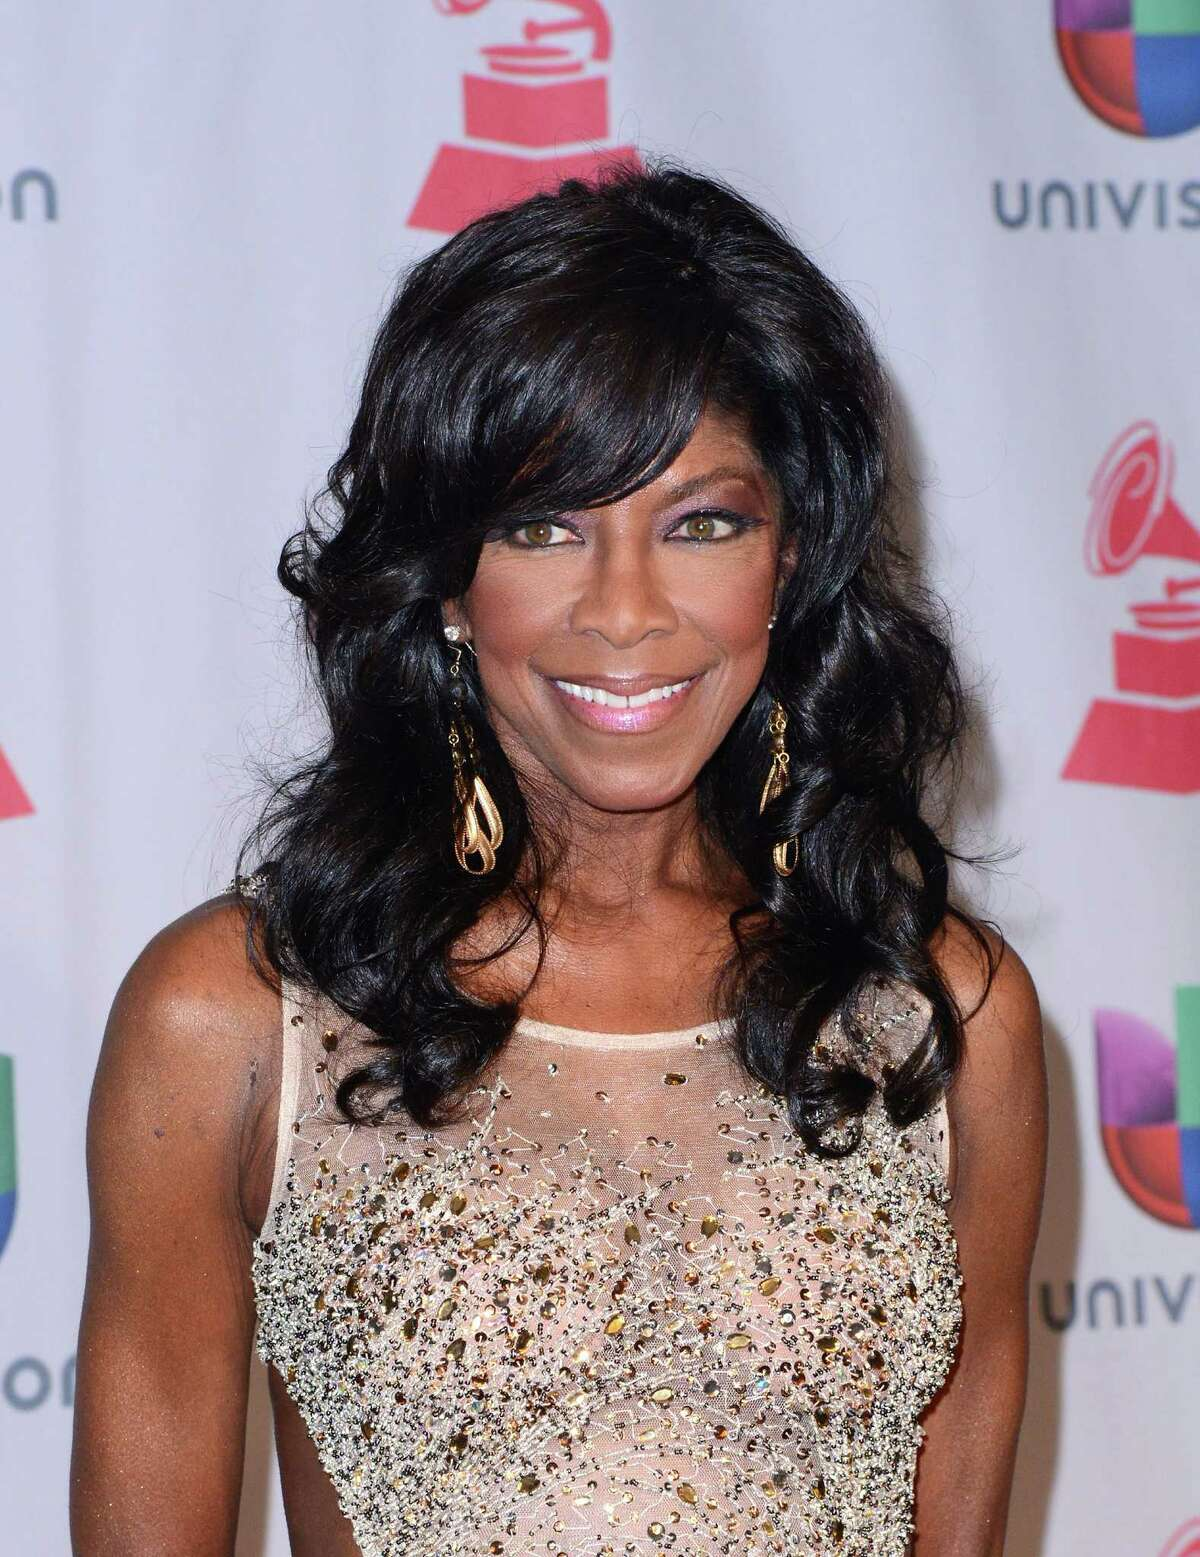 Singer Natalie Cole poses backstage at the 14th Annual Latin GRAMMY Awards at Mandalay Bay Events Center on November 21, 2013 in Las Vegas, Nevada. LAS VEGAS, NV - NOVEMBER 21: Singer Natalie Cole poses backstage at the 14th Annual Latin GRAMMY Awards at Mandalay Bay Events Center on November 21, 2013 in Las Vegas, Nevada. (Photo by C Flanigan/Getty Images)